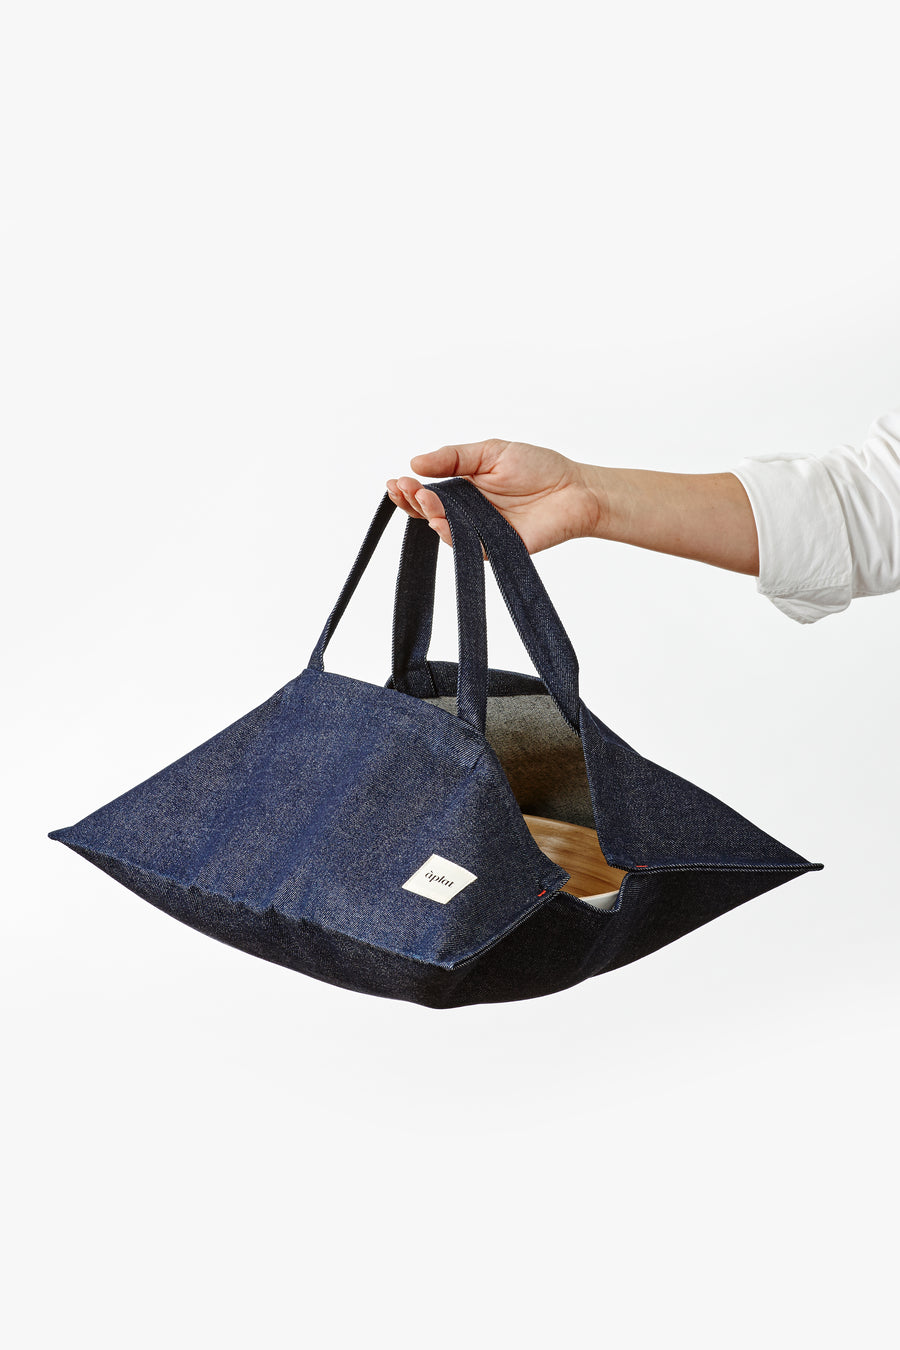 Plat Culinary Wide Tote | Denim Dark